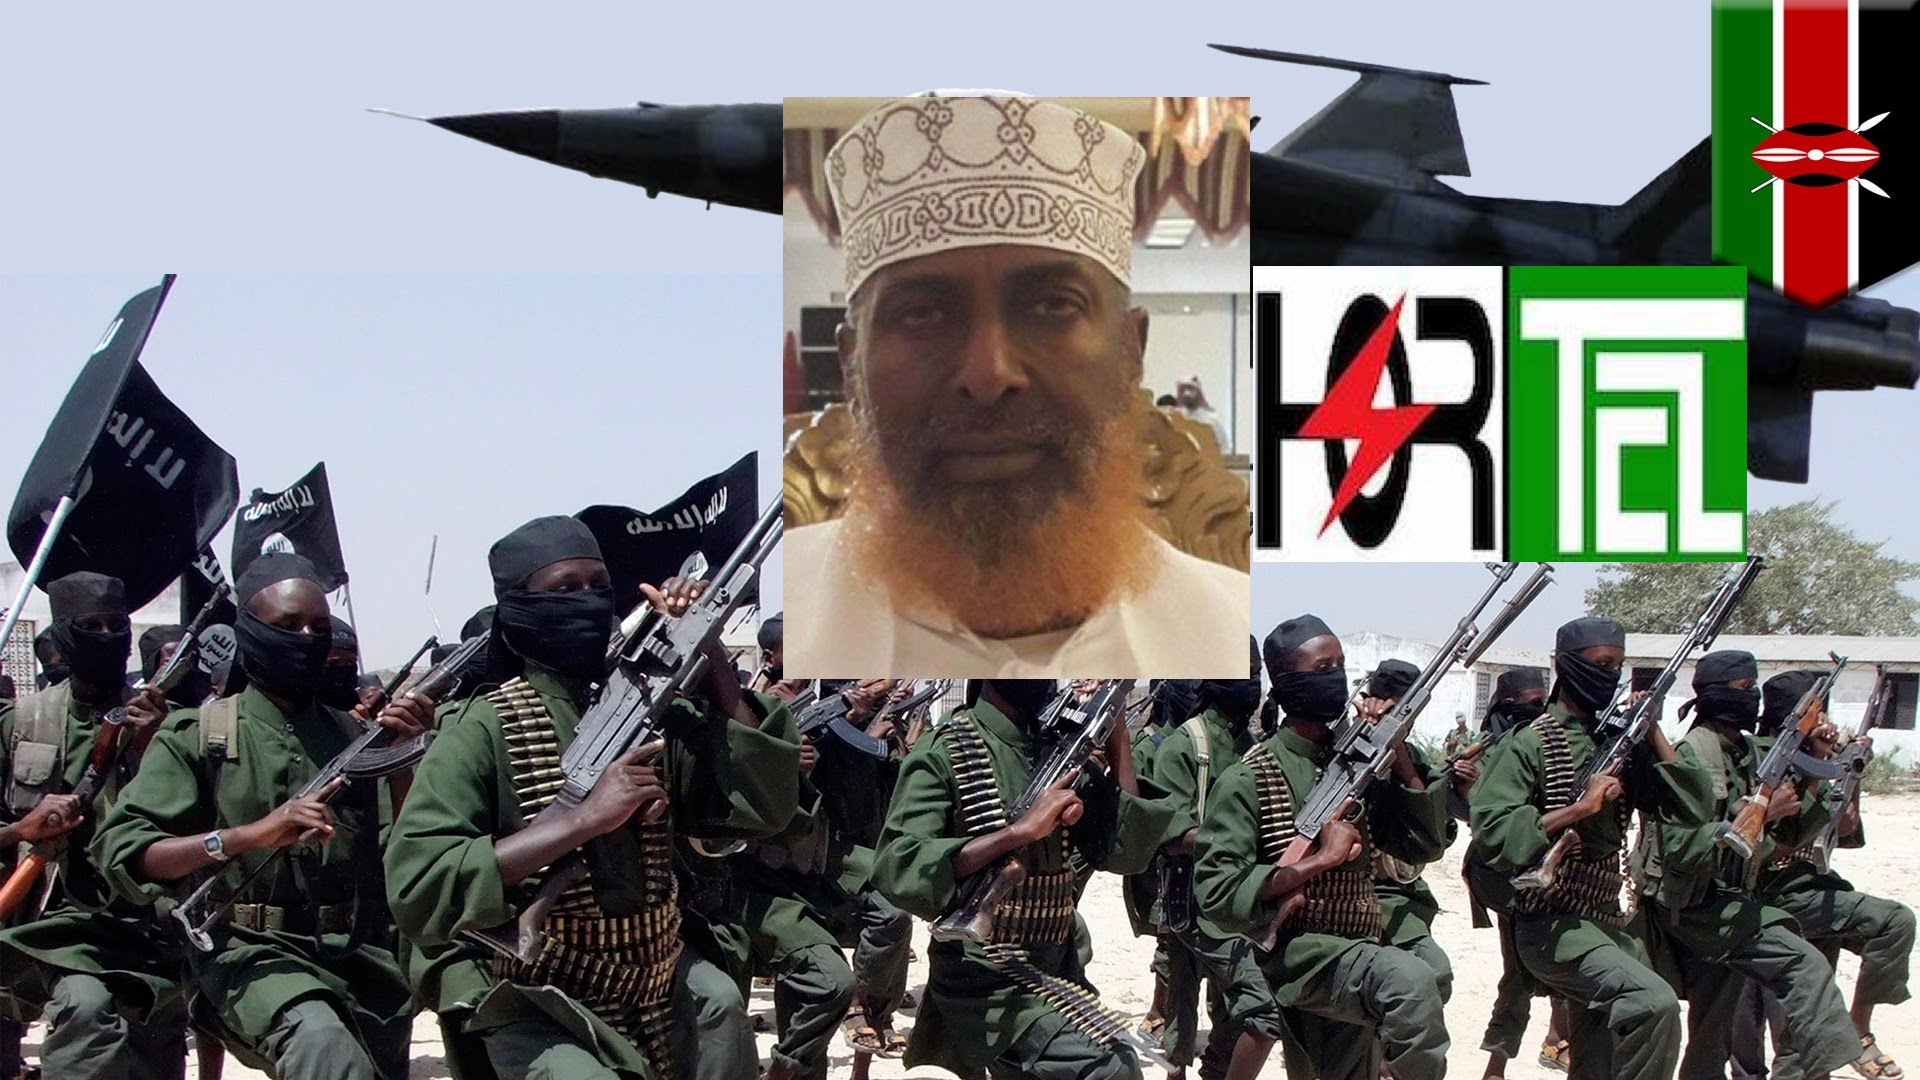 """The U.N. report says, adding that """"Hormuud Telecommunications has provided key material and logistical support to al-Shabaab to include weapons, private fighters, and ammunition."""""""